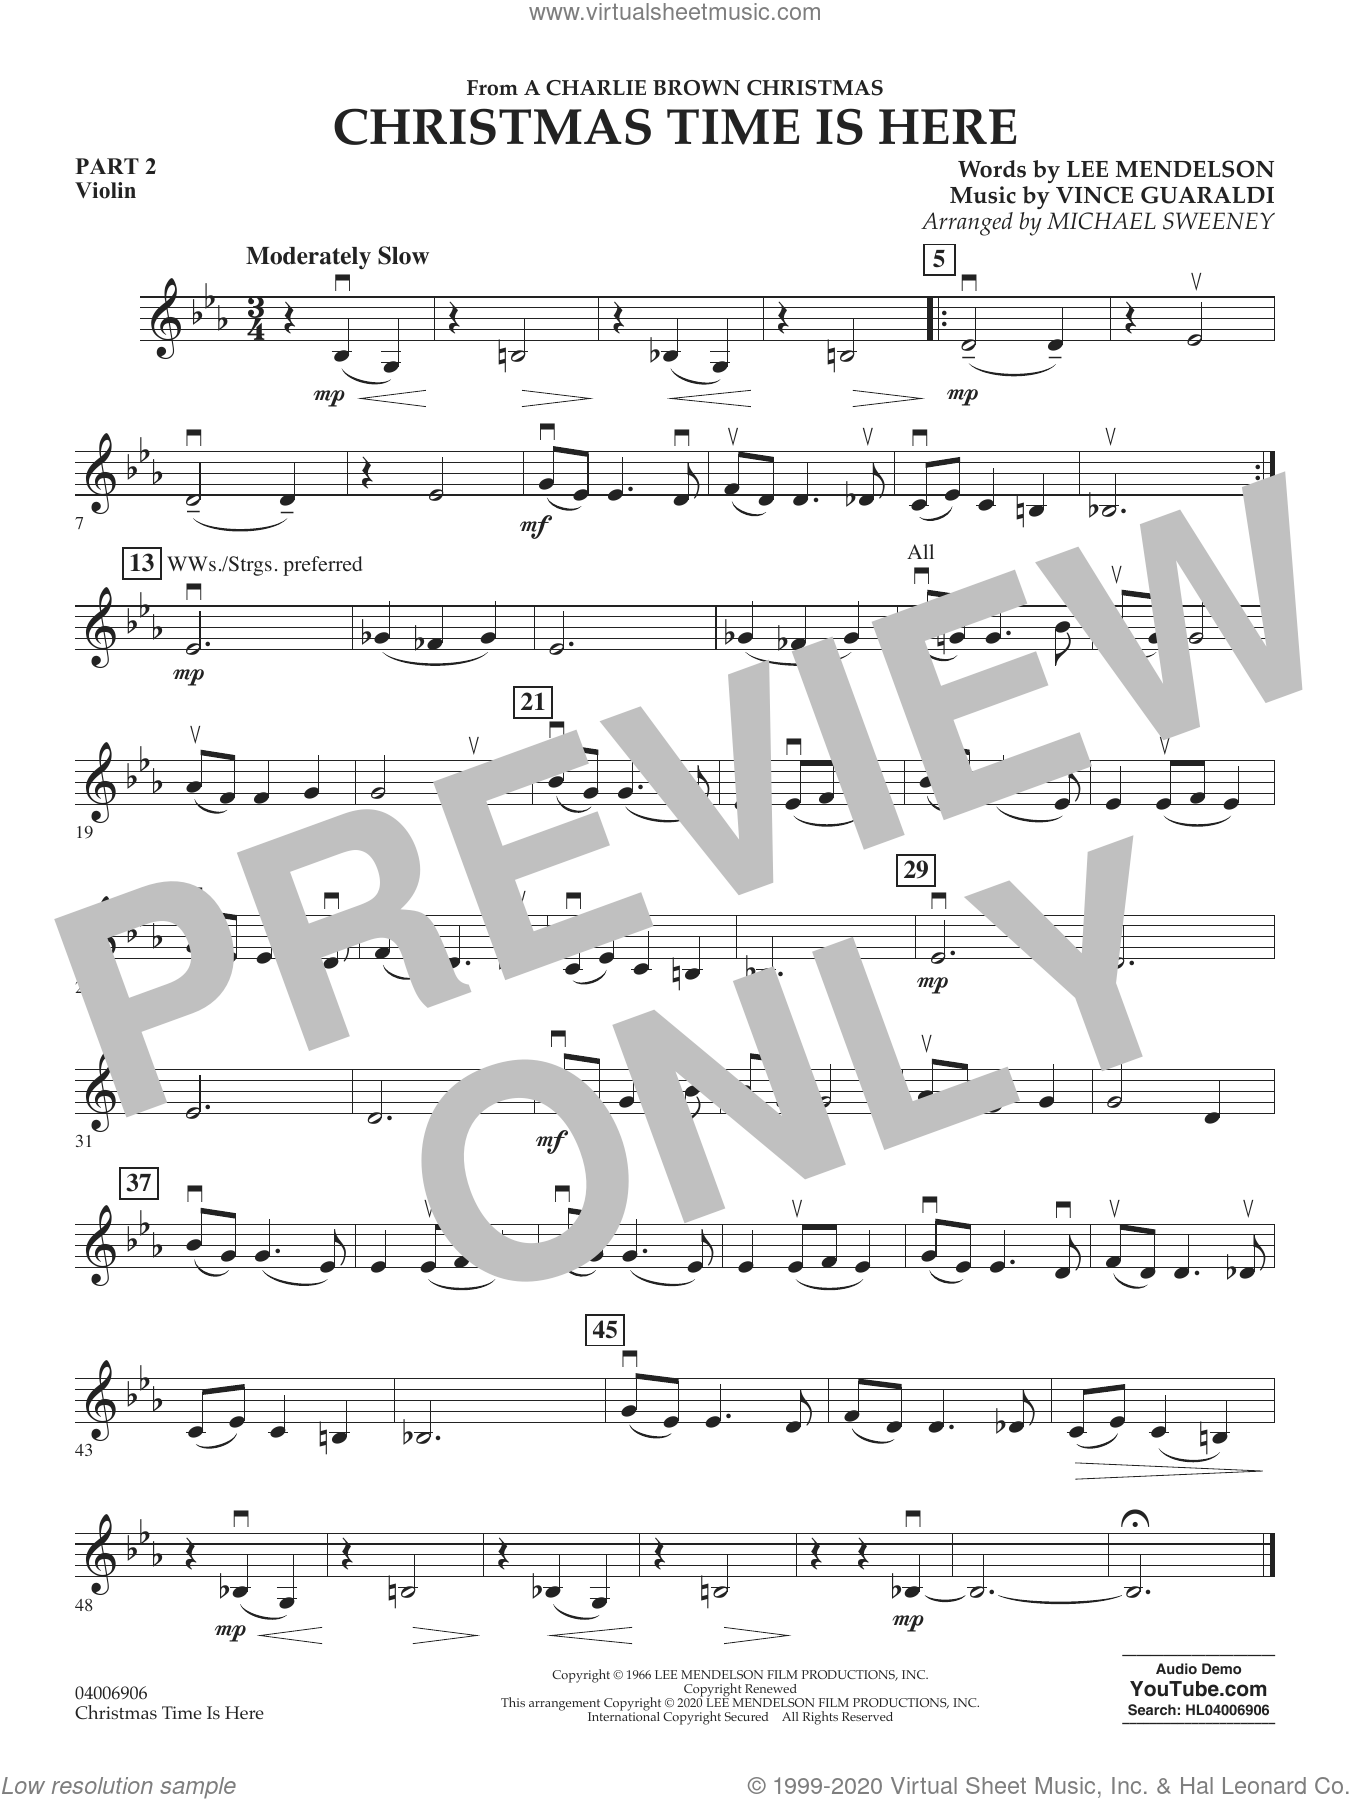 Christmas Time Is Here (arr. Michael Sweeney) sheet music for concert band (pt.2 - violin) by Vince Guaraldi, Michael Sweeney and Lee Mendelson, intermediate skill level